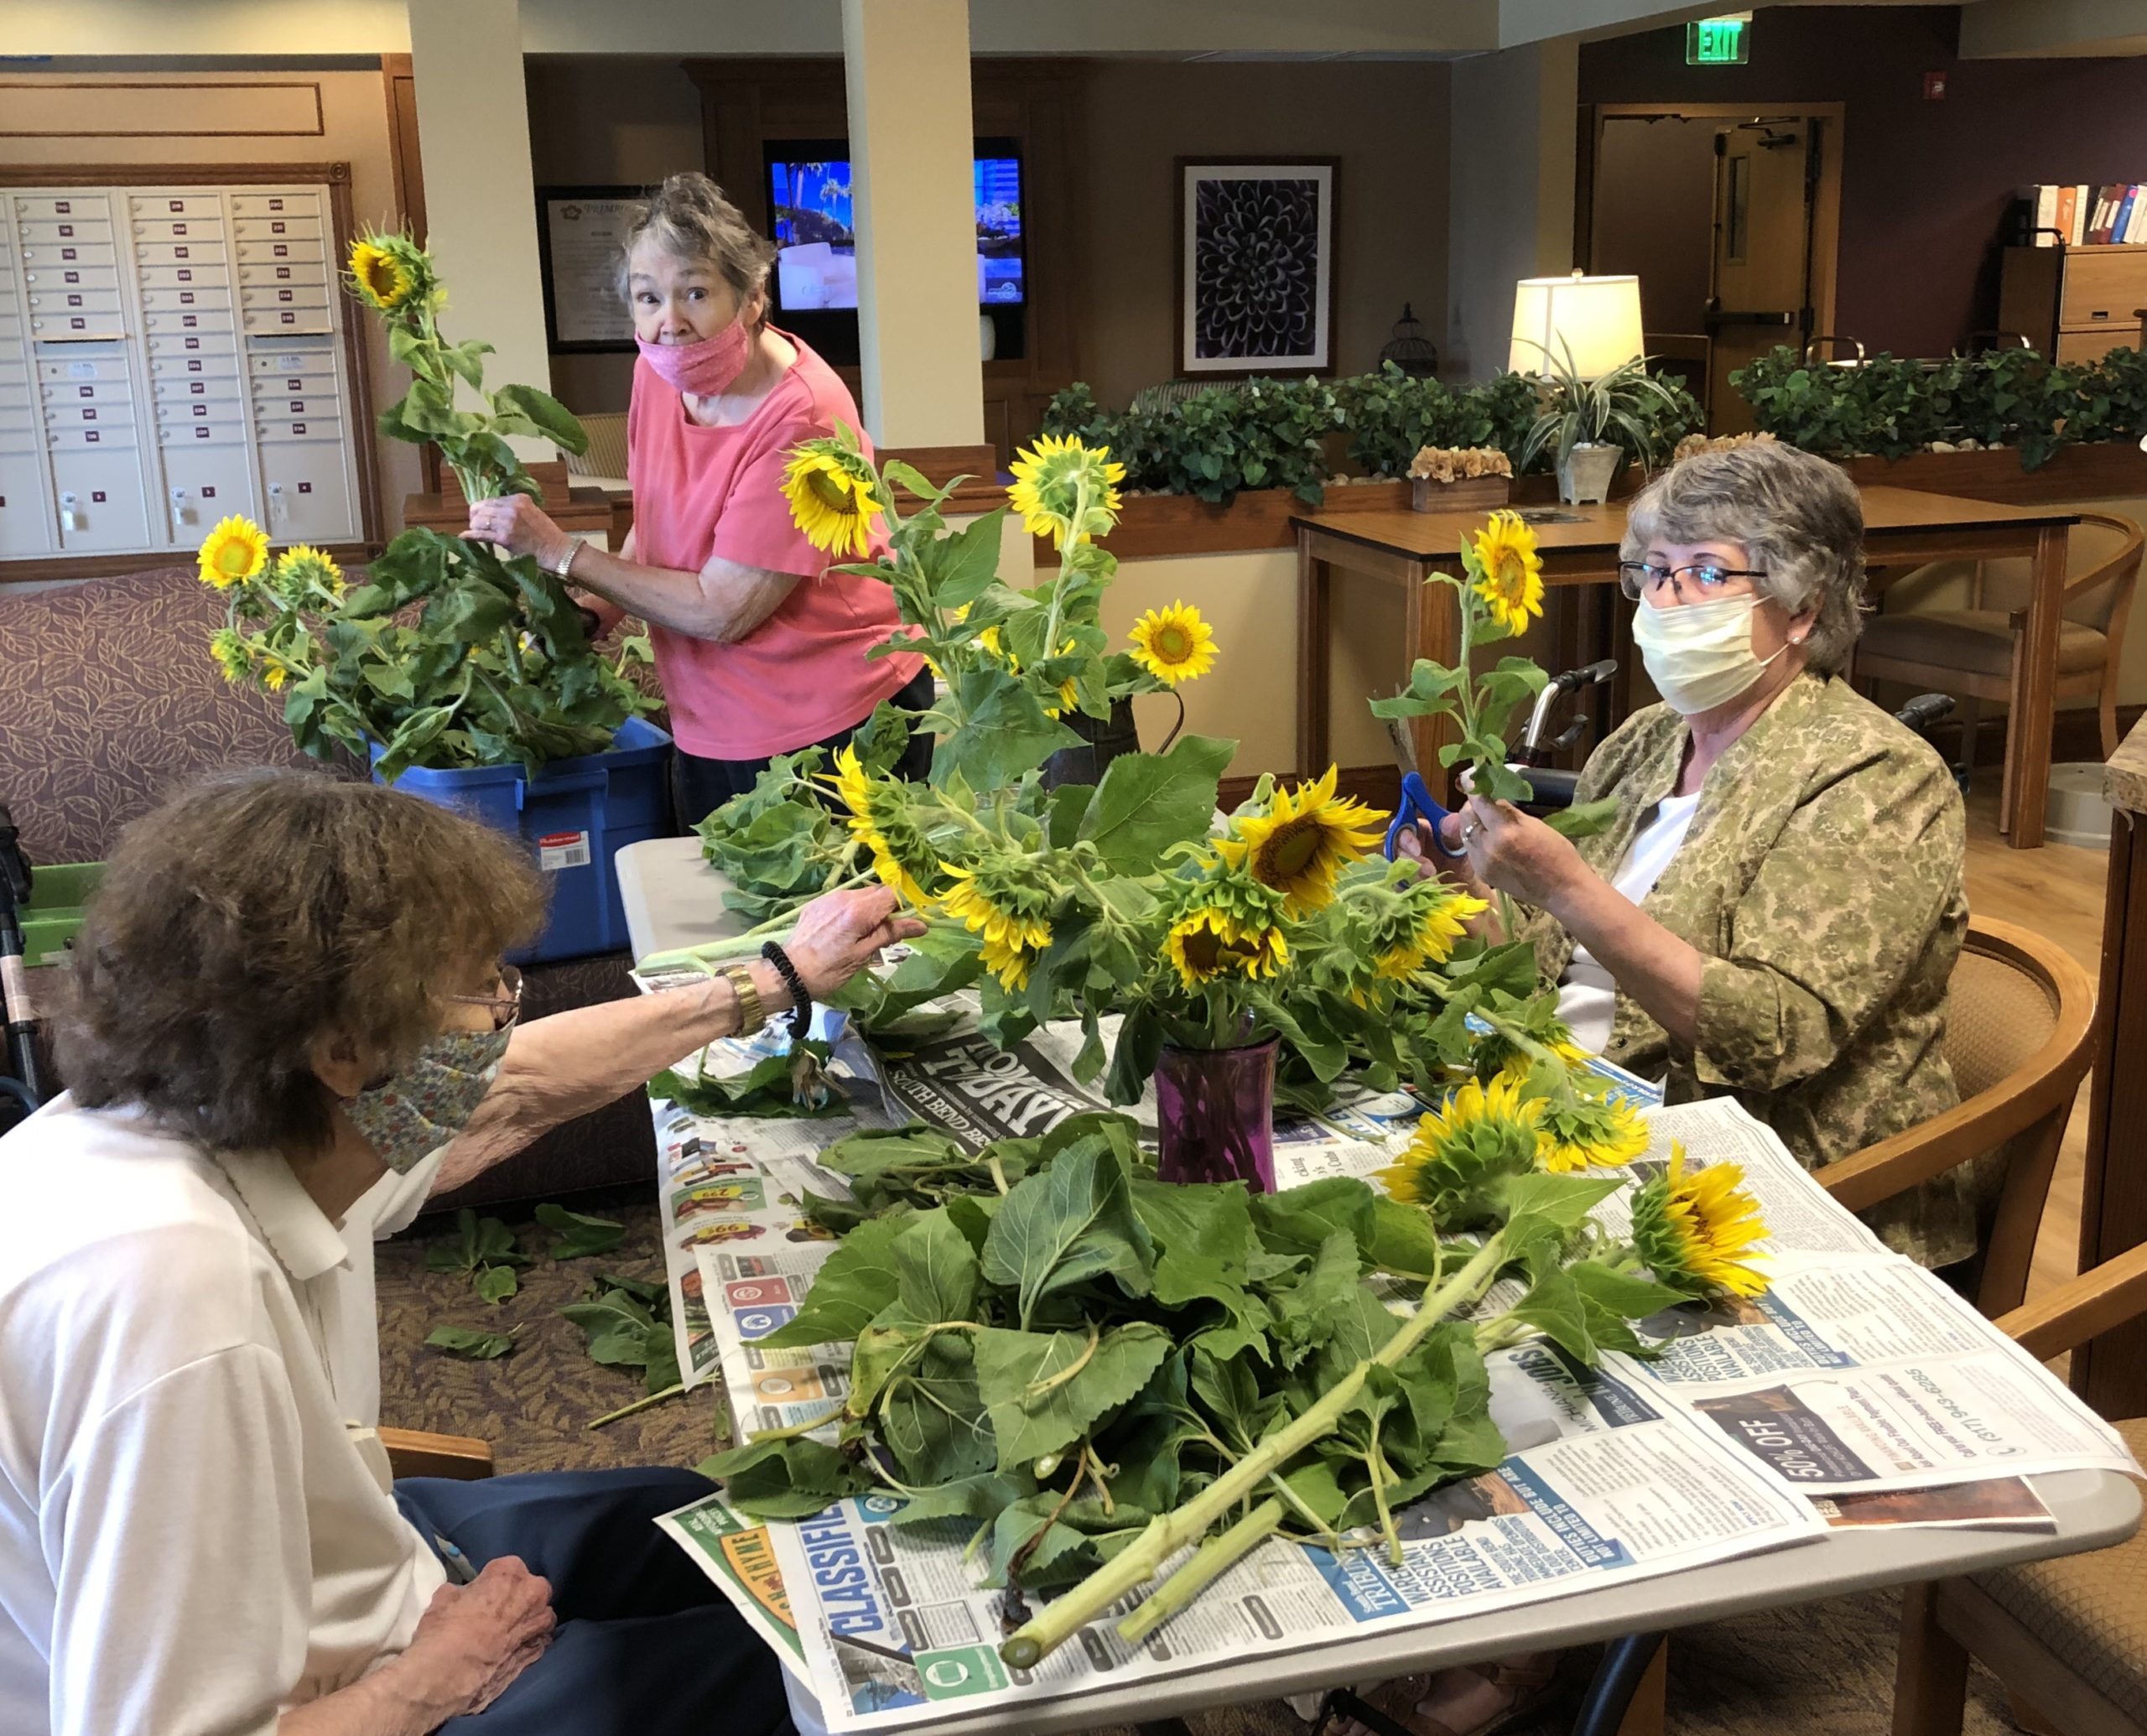 Getting sunflowers donated by Thistleberry Farm ready for vases.